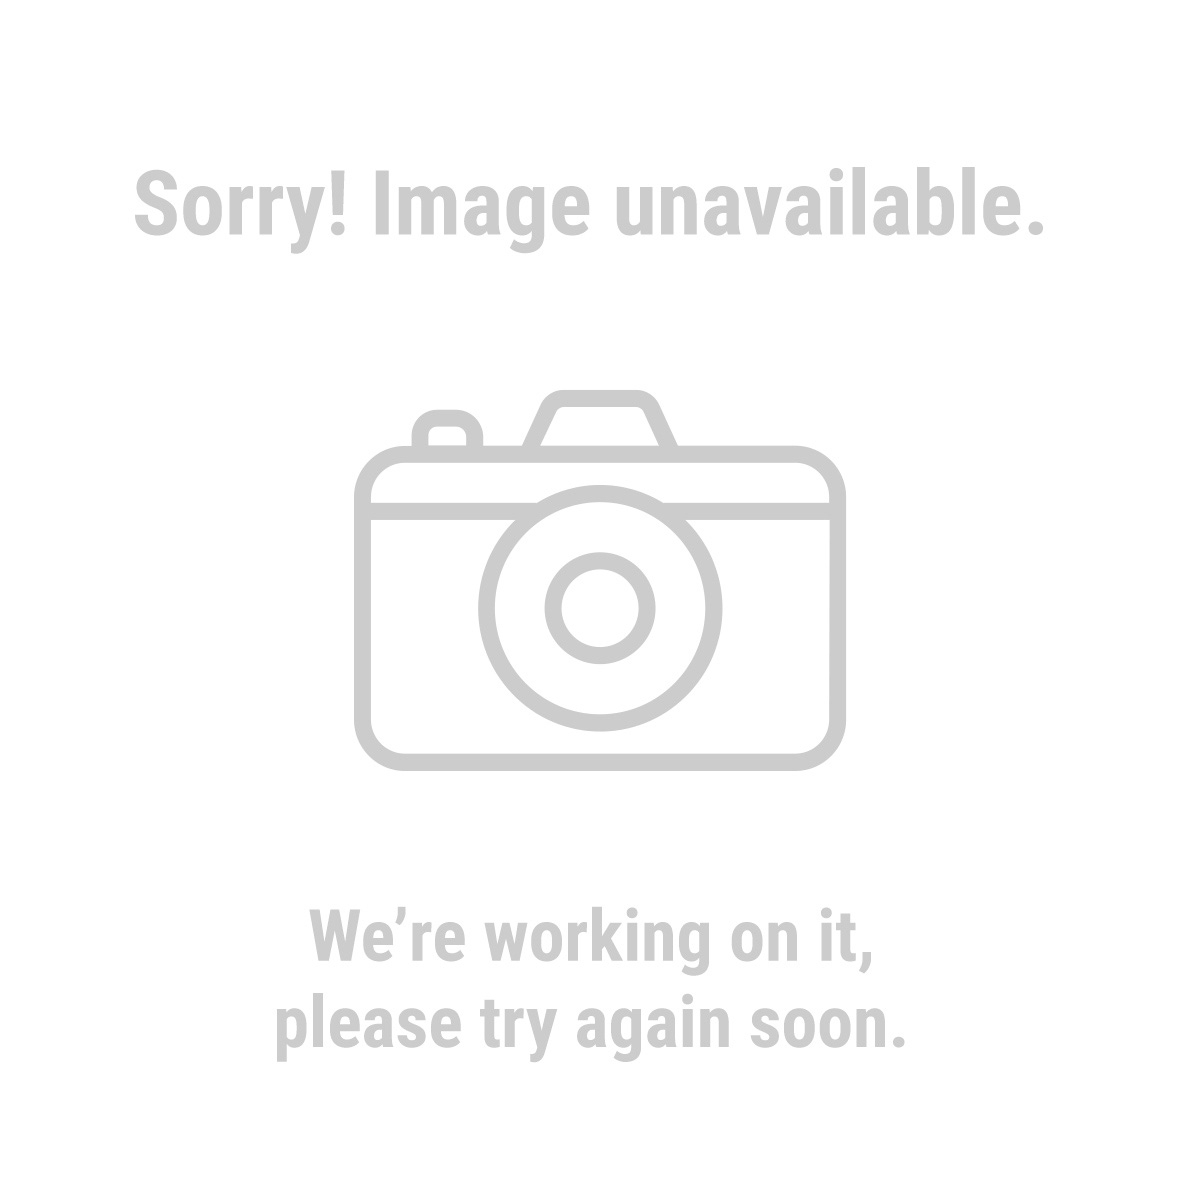 Storehouse 67687 1012 Piece Terminal Assortment